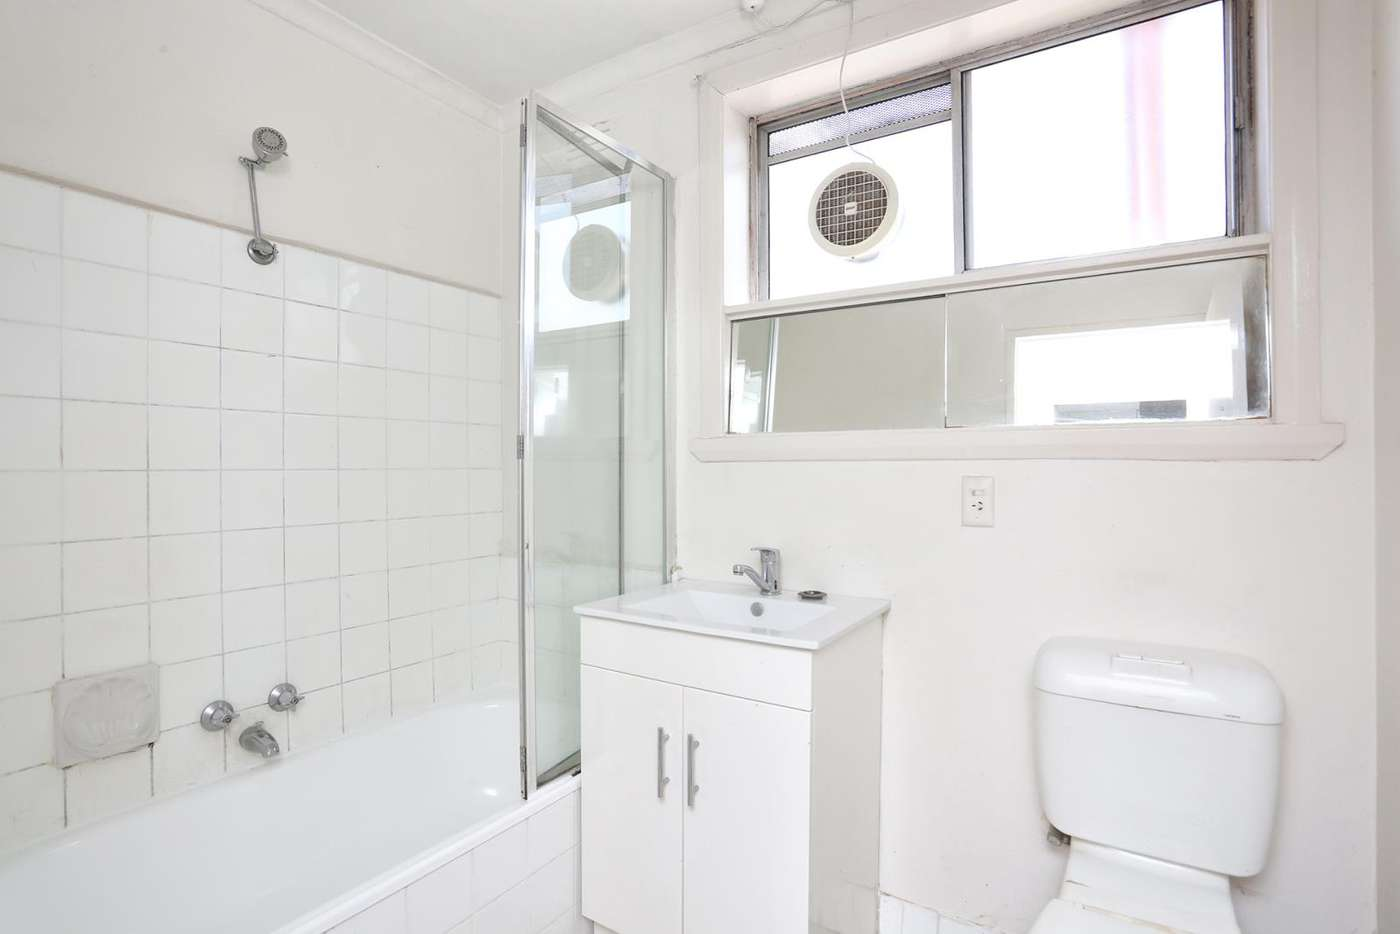 Fifth view of Homely apartment listing, 1/71 Lord St, Richmond VIC 3121